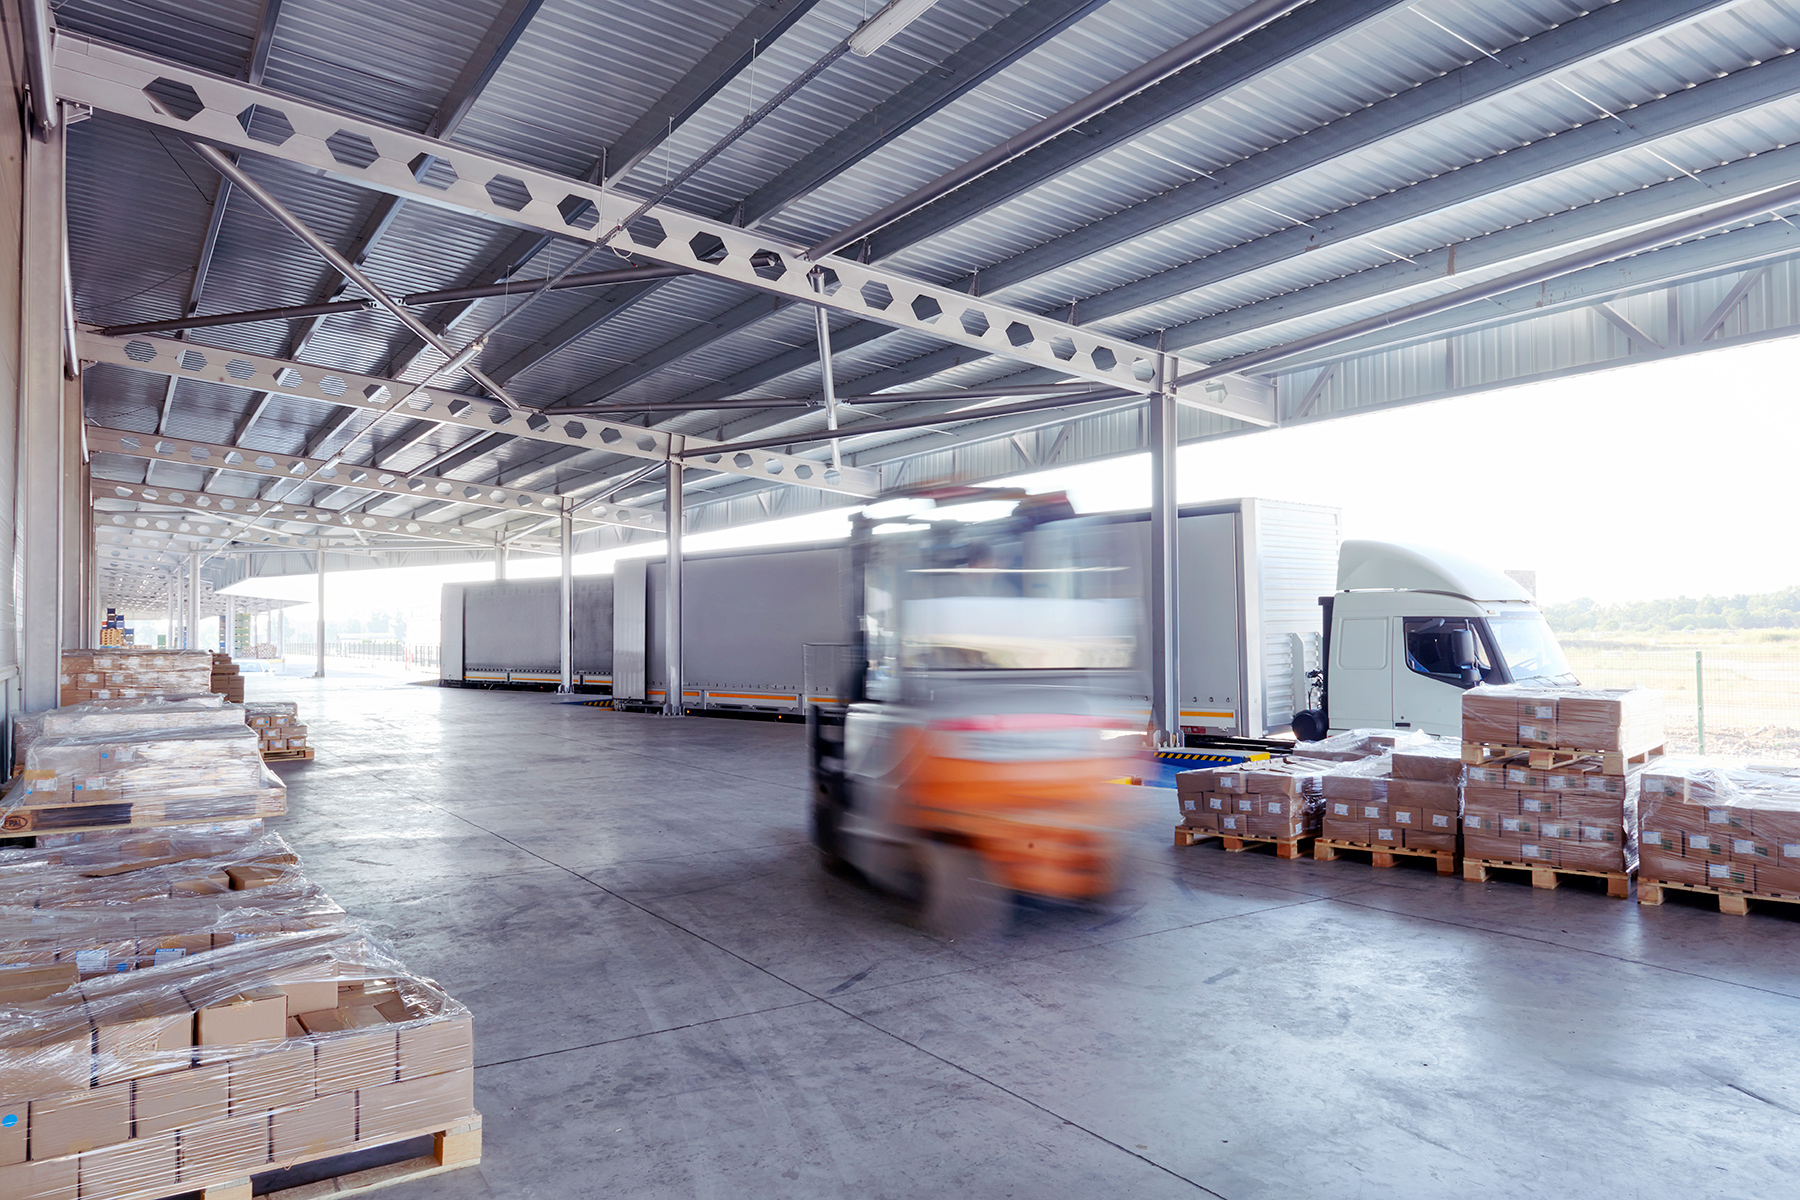 U.S. and foreign investors have a growing appetite for cold storage facilities, CBRE said. (iStock)